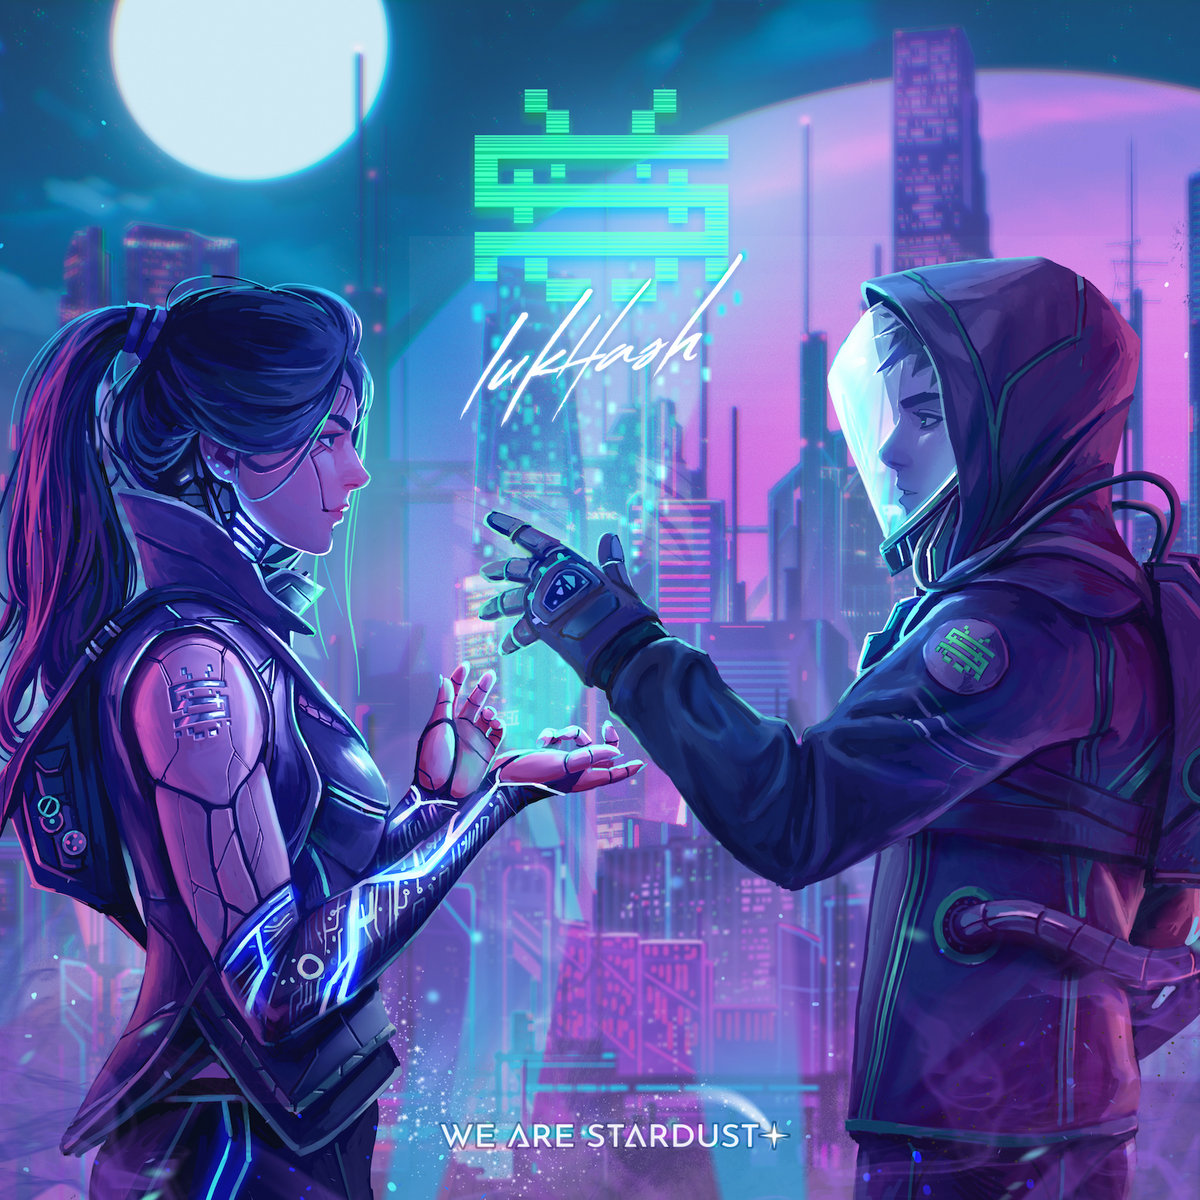 LukaHash - We Are Stardust (2021) [FLAC] Download